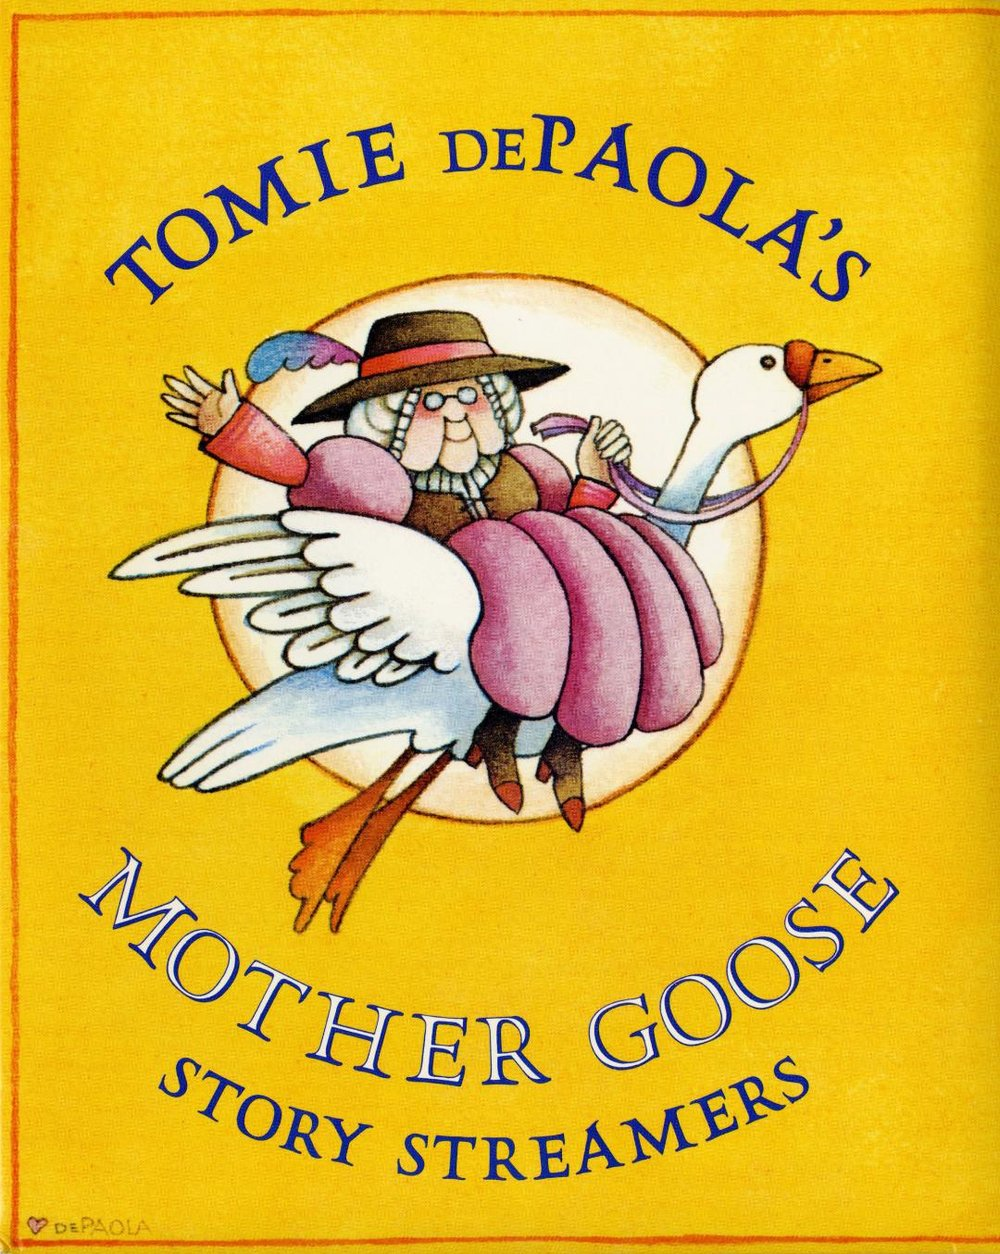 Tomie dePaola's Mother Goose Story Streamers US.jpg